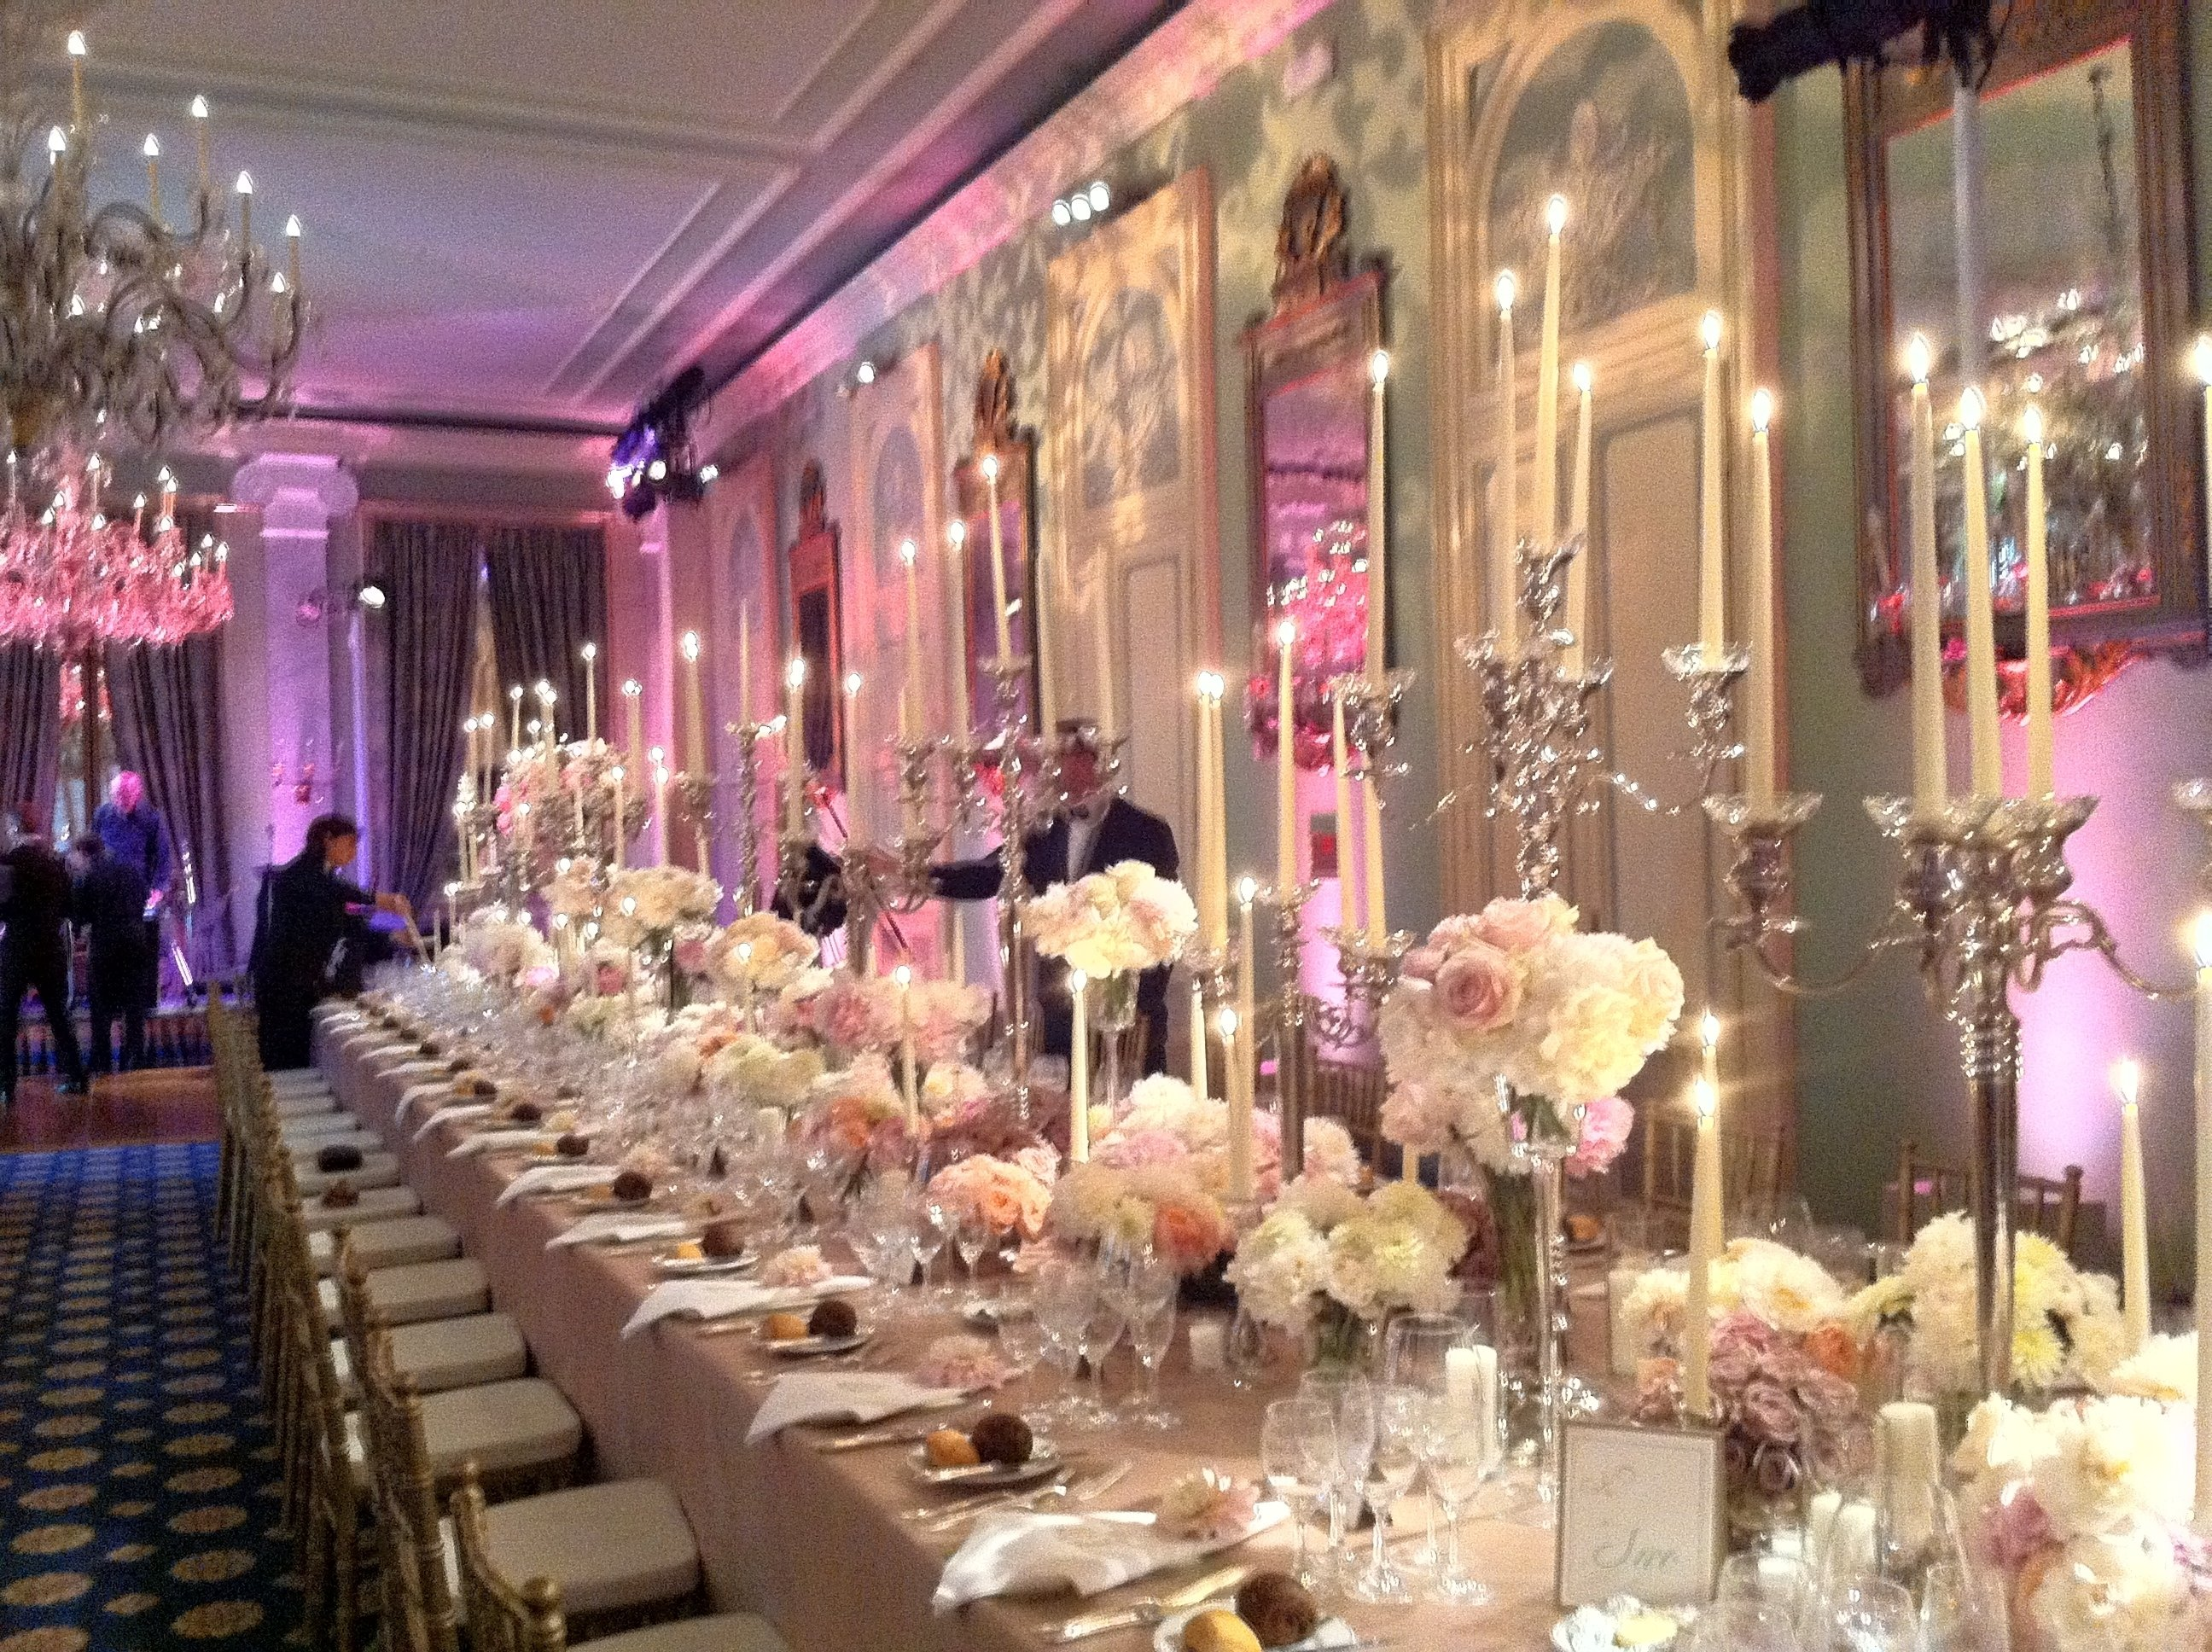 10 Lovely Reception Ideas For Small Weddings attractive beautiful wedding reception ideas beautiful small wedding 1 2021